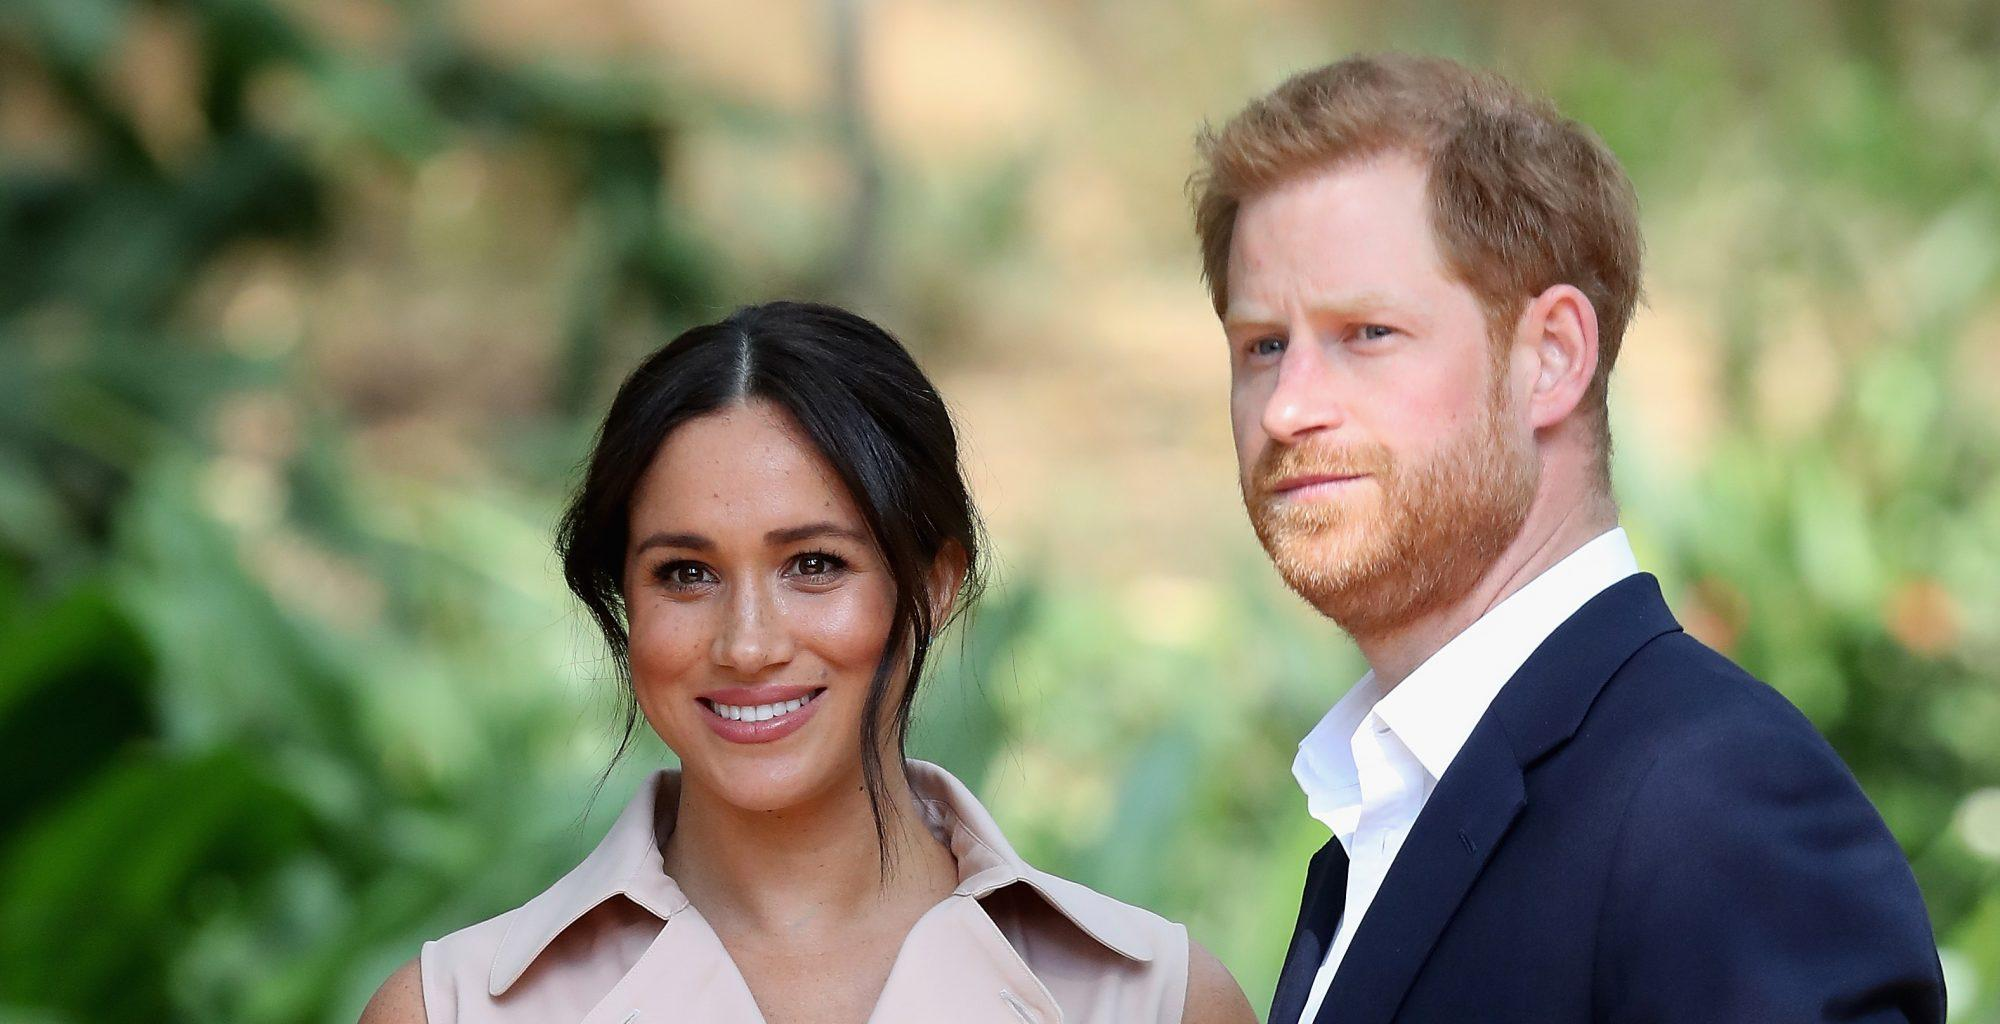 Prince Harry And Meghan Markle Might Welcome Another Baby Soon, Friends Say